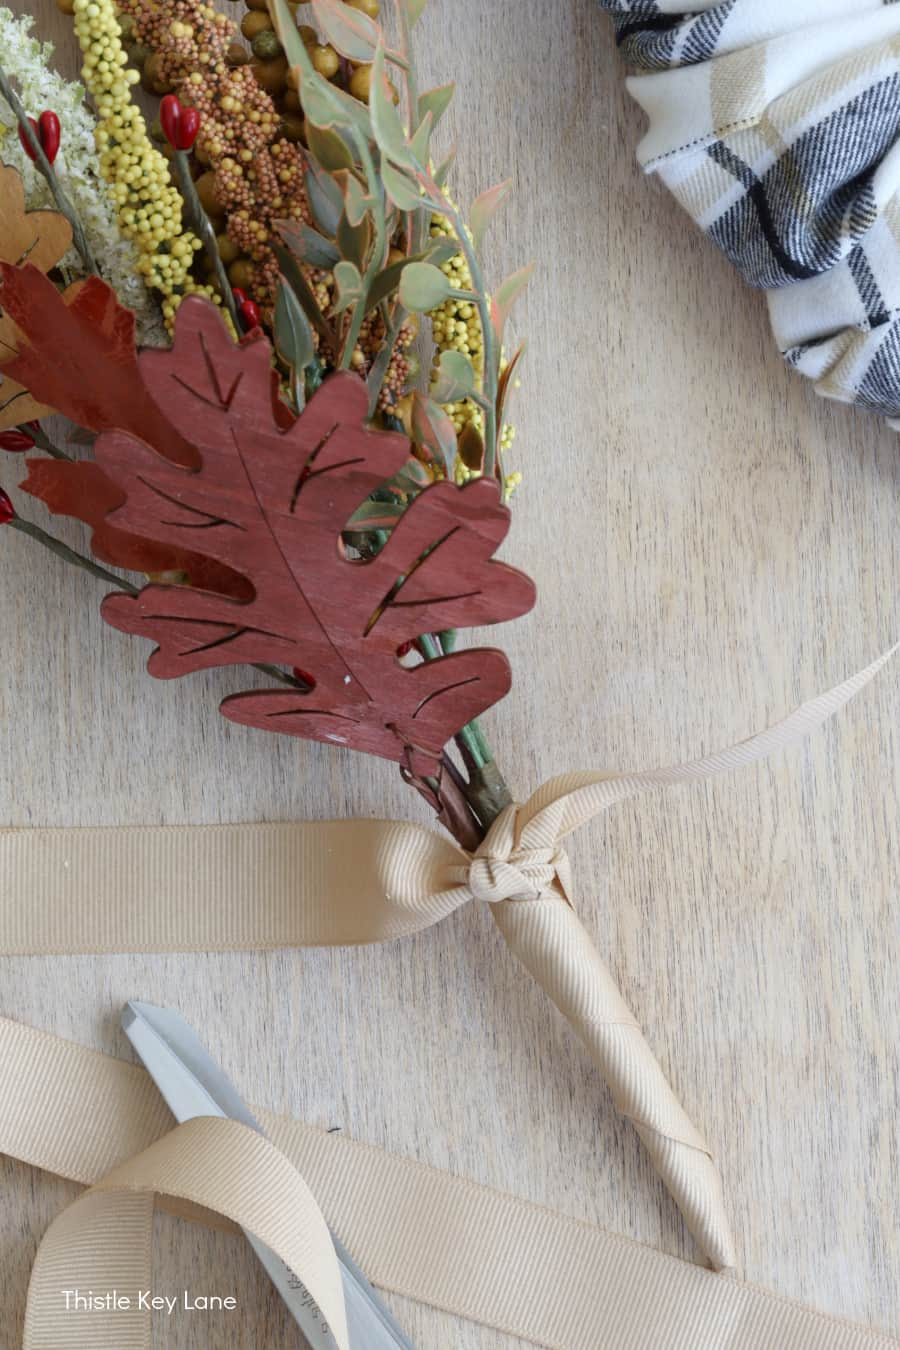 Fall picks tied together with ribbon.